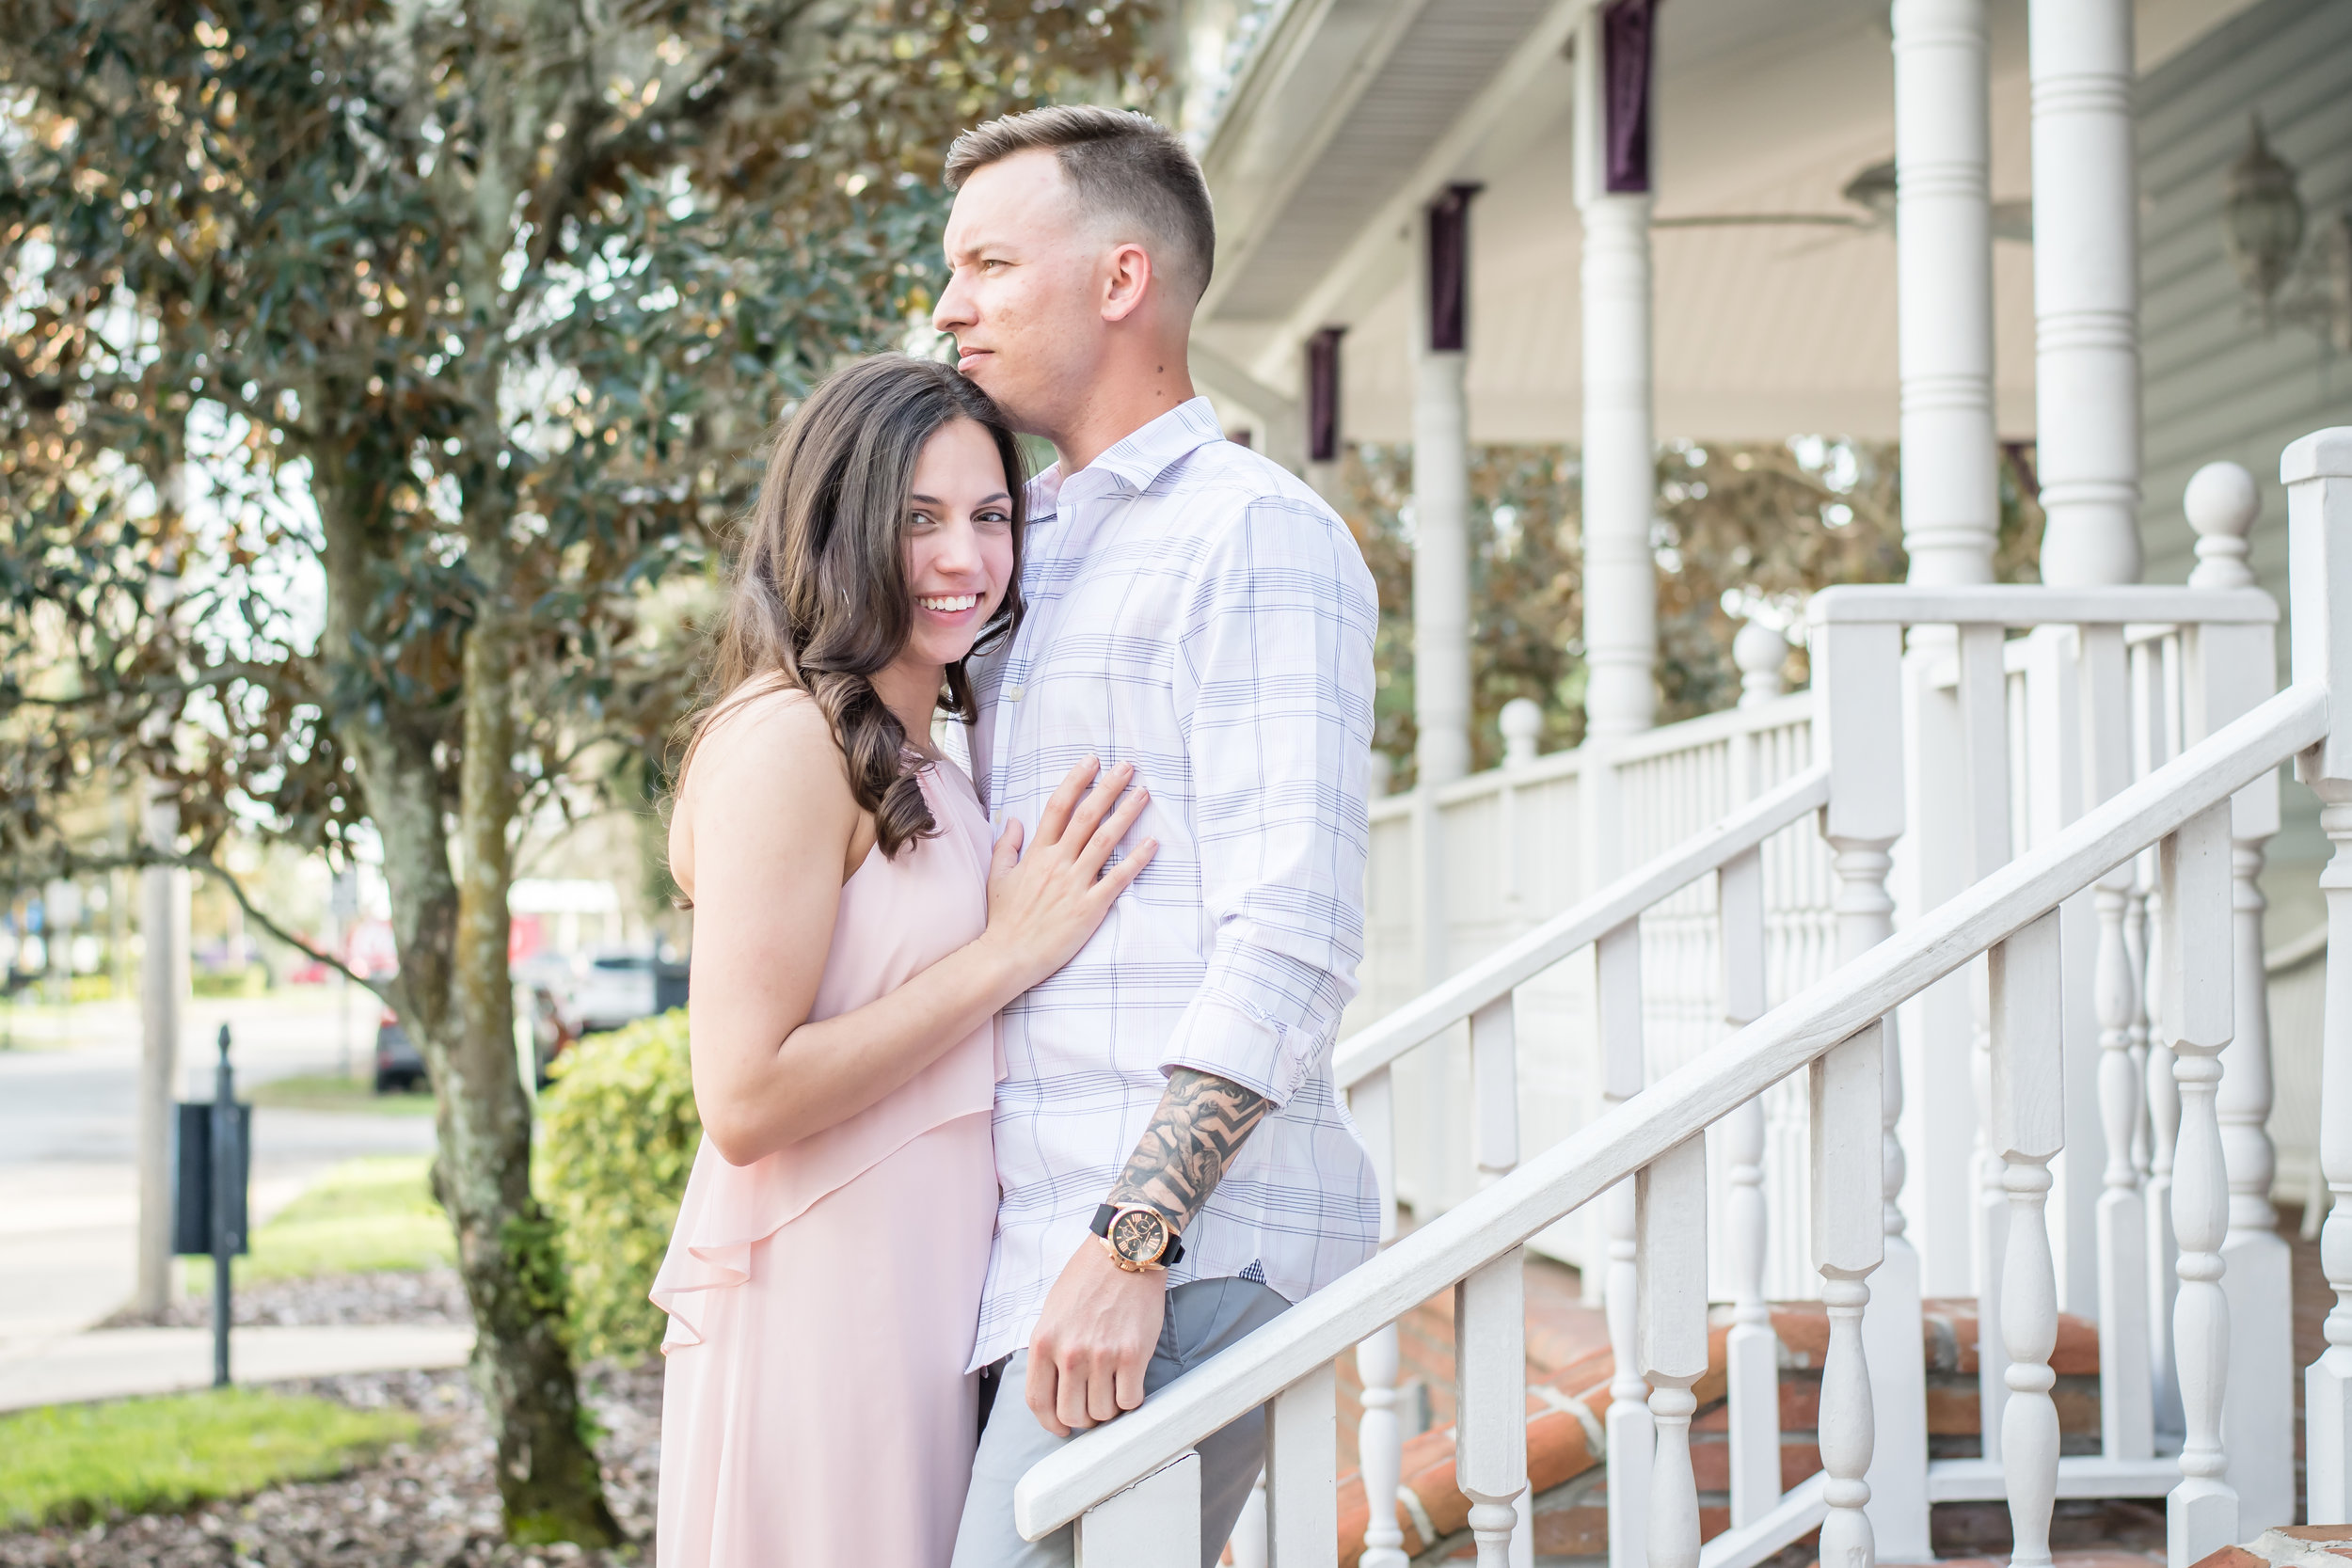 longwood-engagement-session-orlando-photographer-yanitza-ninett-32.jpg